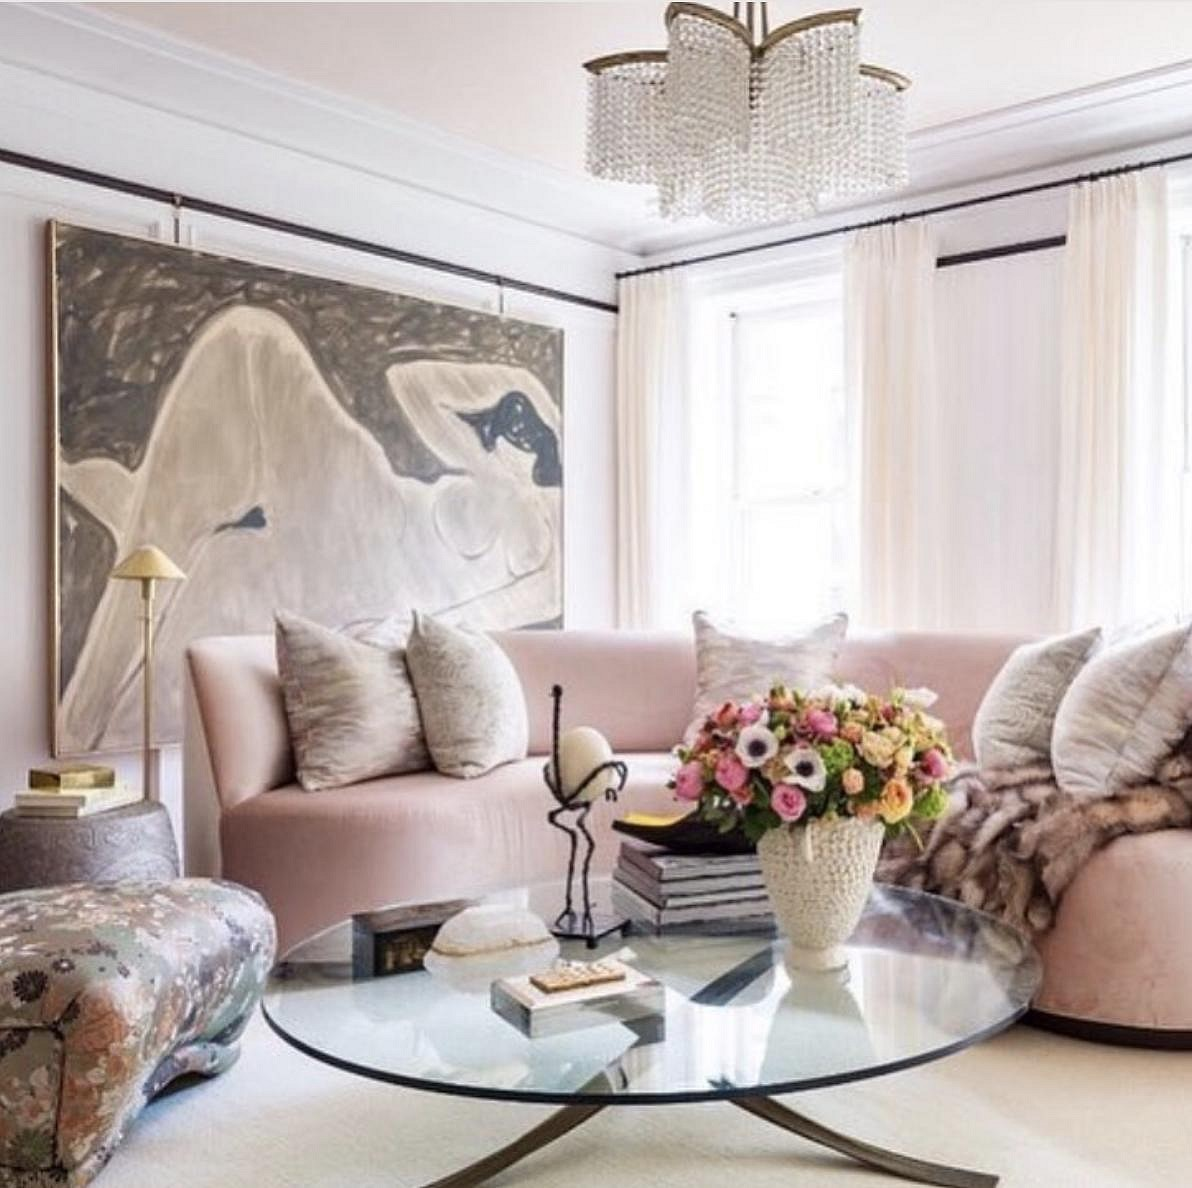 Berry Campbell Included in 47th Annual Kips Bay Decorator Showhouse